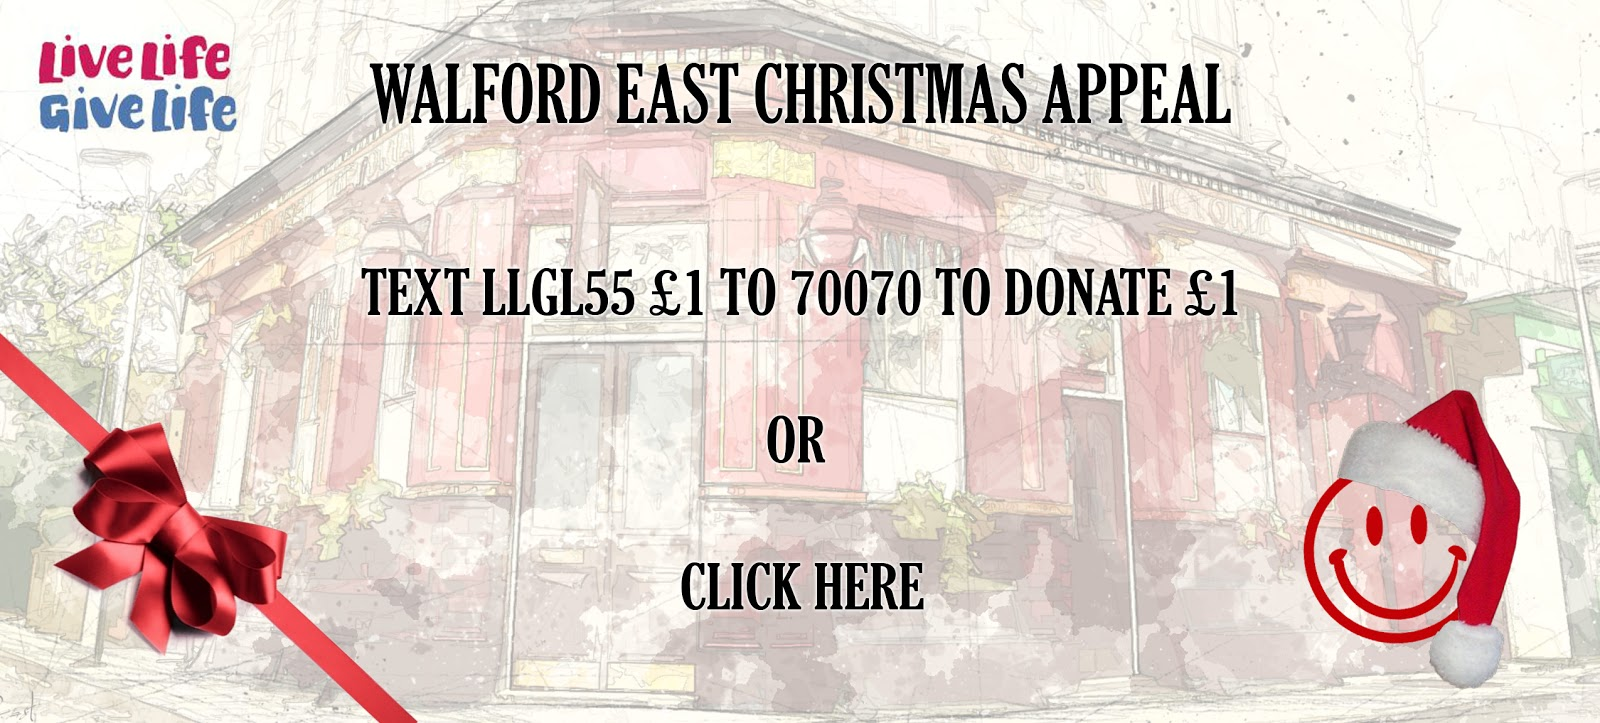 https://www.justgiving.com/fundraising/walford-east